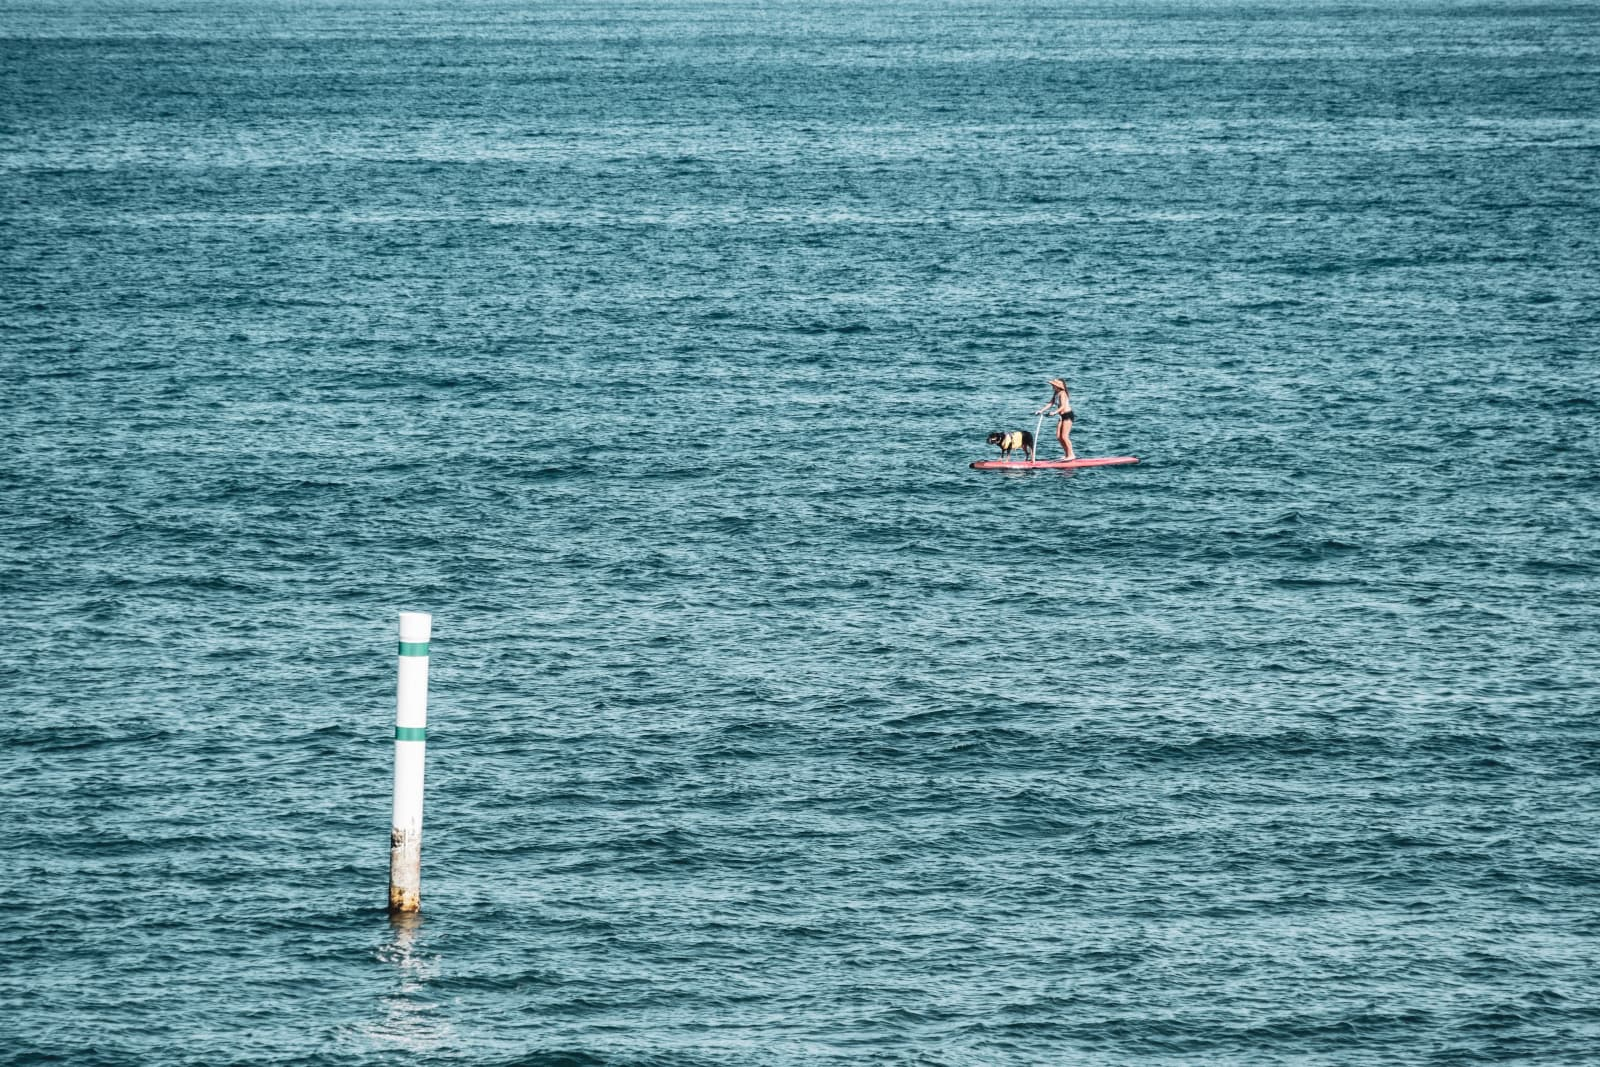 Woman And Dog On Paddleboard